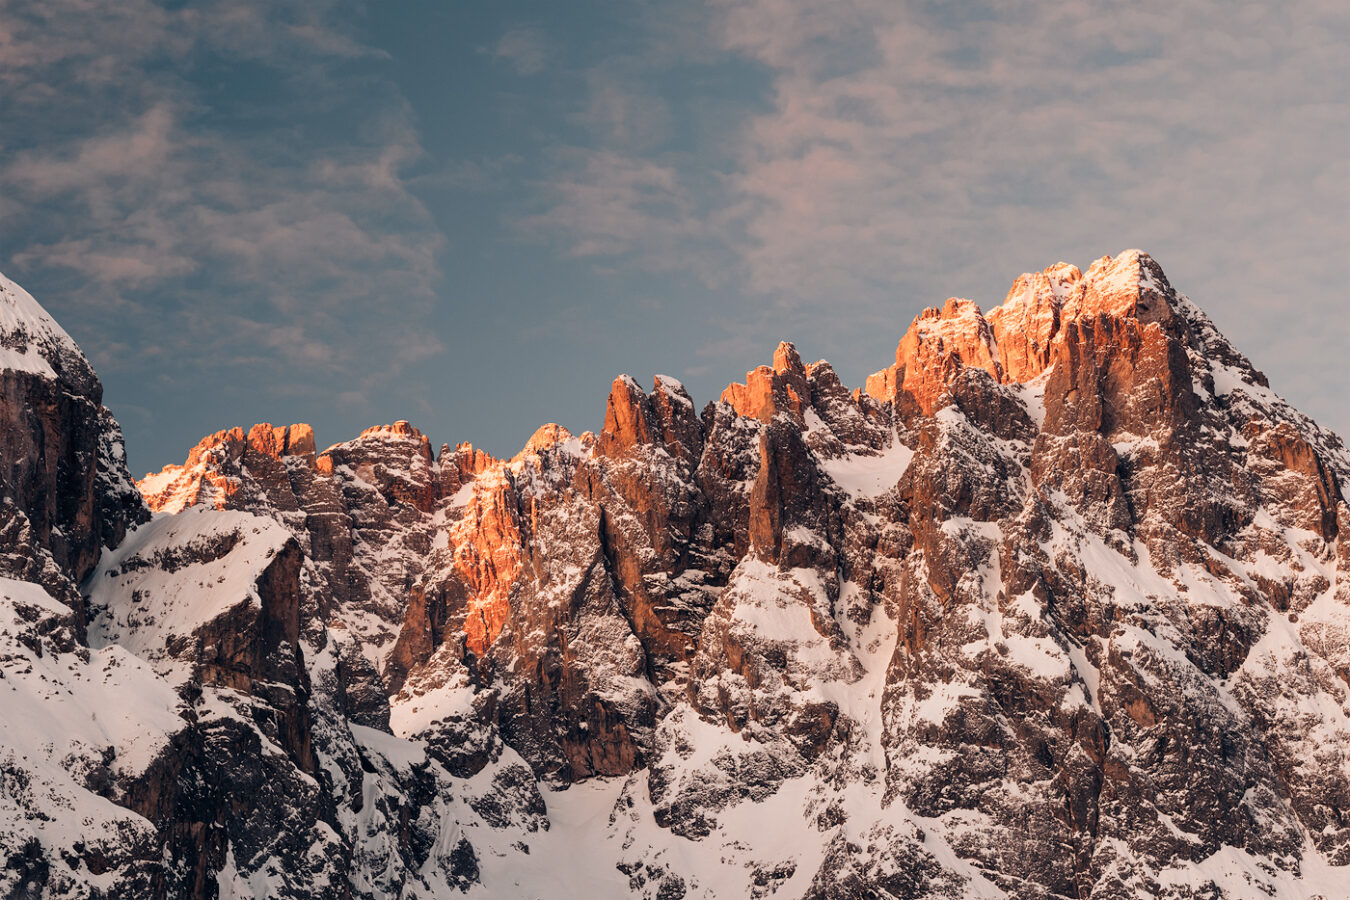 First Light, Sexten Dolomites, South Tyrol, Italy by Nils Leonhardt